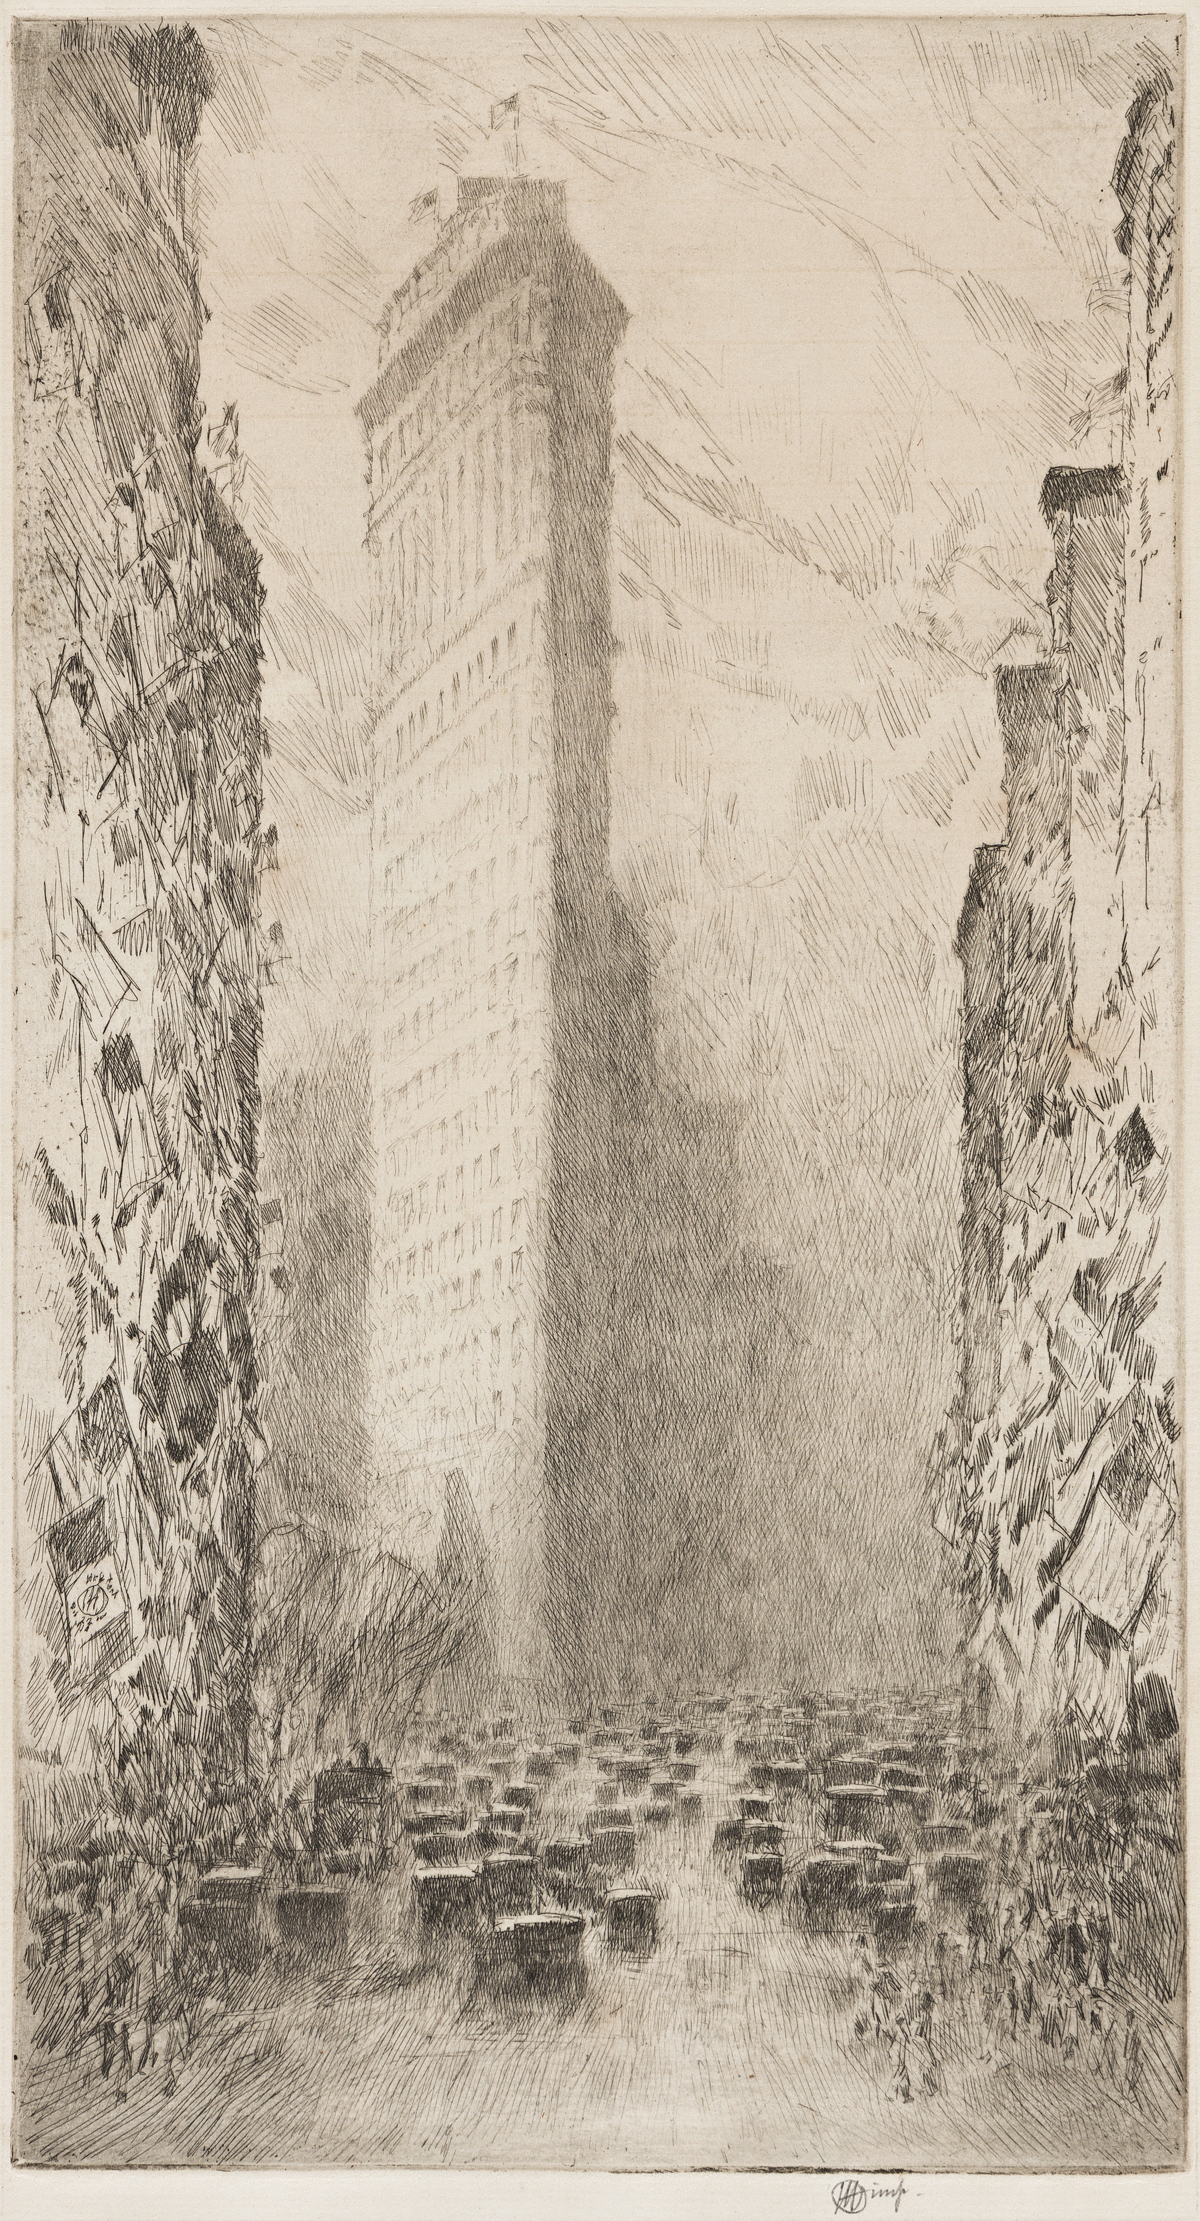 CHILDE HASSAM Washingtons Birthday, Fifth Avenue and 23rd Street.